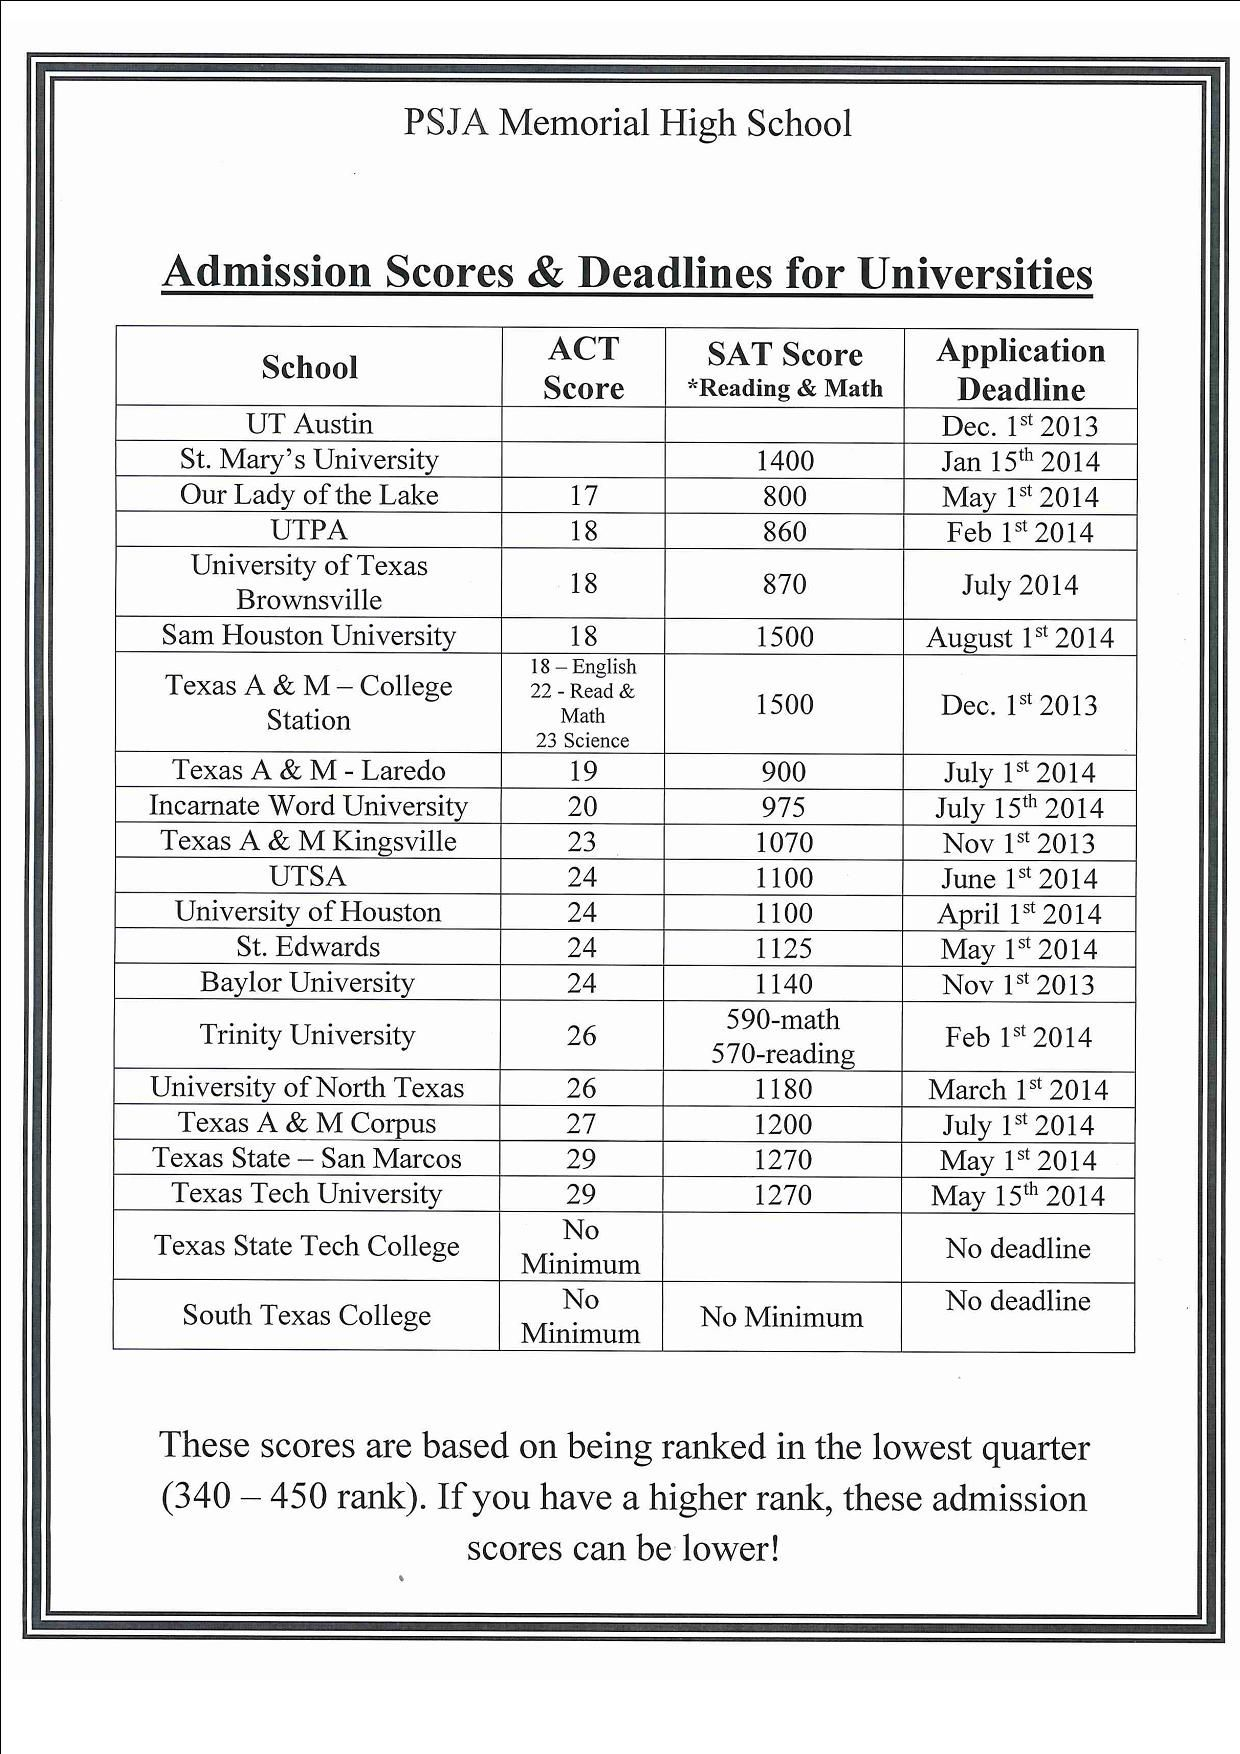 Admission Scores & Deadlines for Universities  #deadlines #universities #ACTscores #SATscores